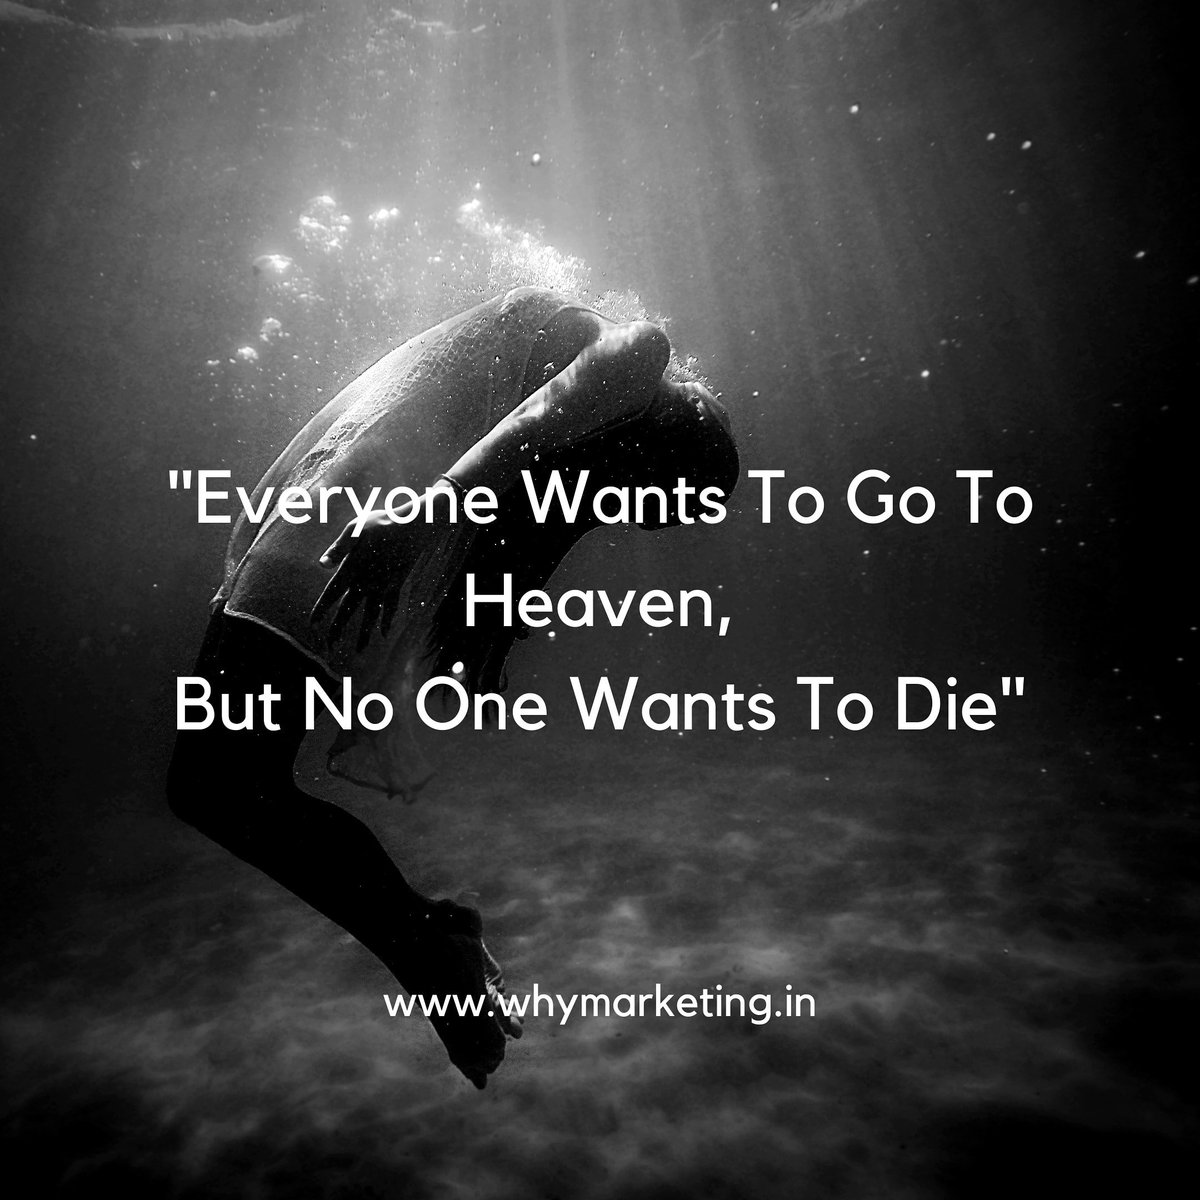 Everyone wants to get rich, but no one wants to gave failures..   http://www.whymarketing.in   #Marketing #marketingmindset #marketingdigital #failure #desire #want #success #successquotes #motivation #heaven #die #rich #struggle #hustle #efforts #win #looser #failtowinpic.twitter.com/dNzp1p999Q